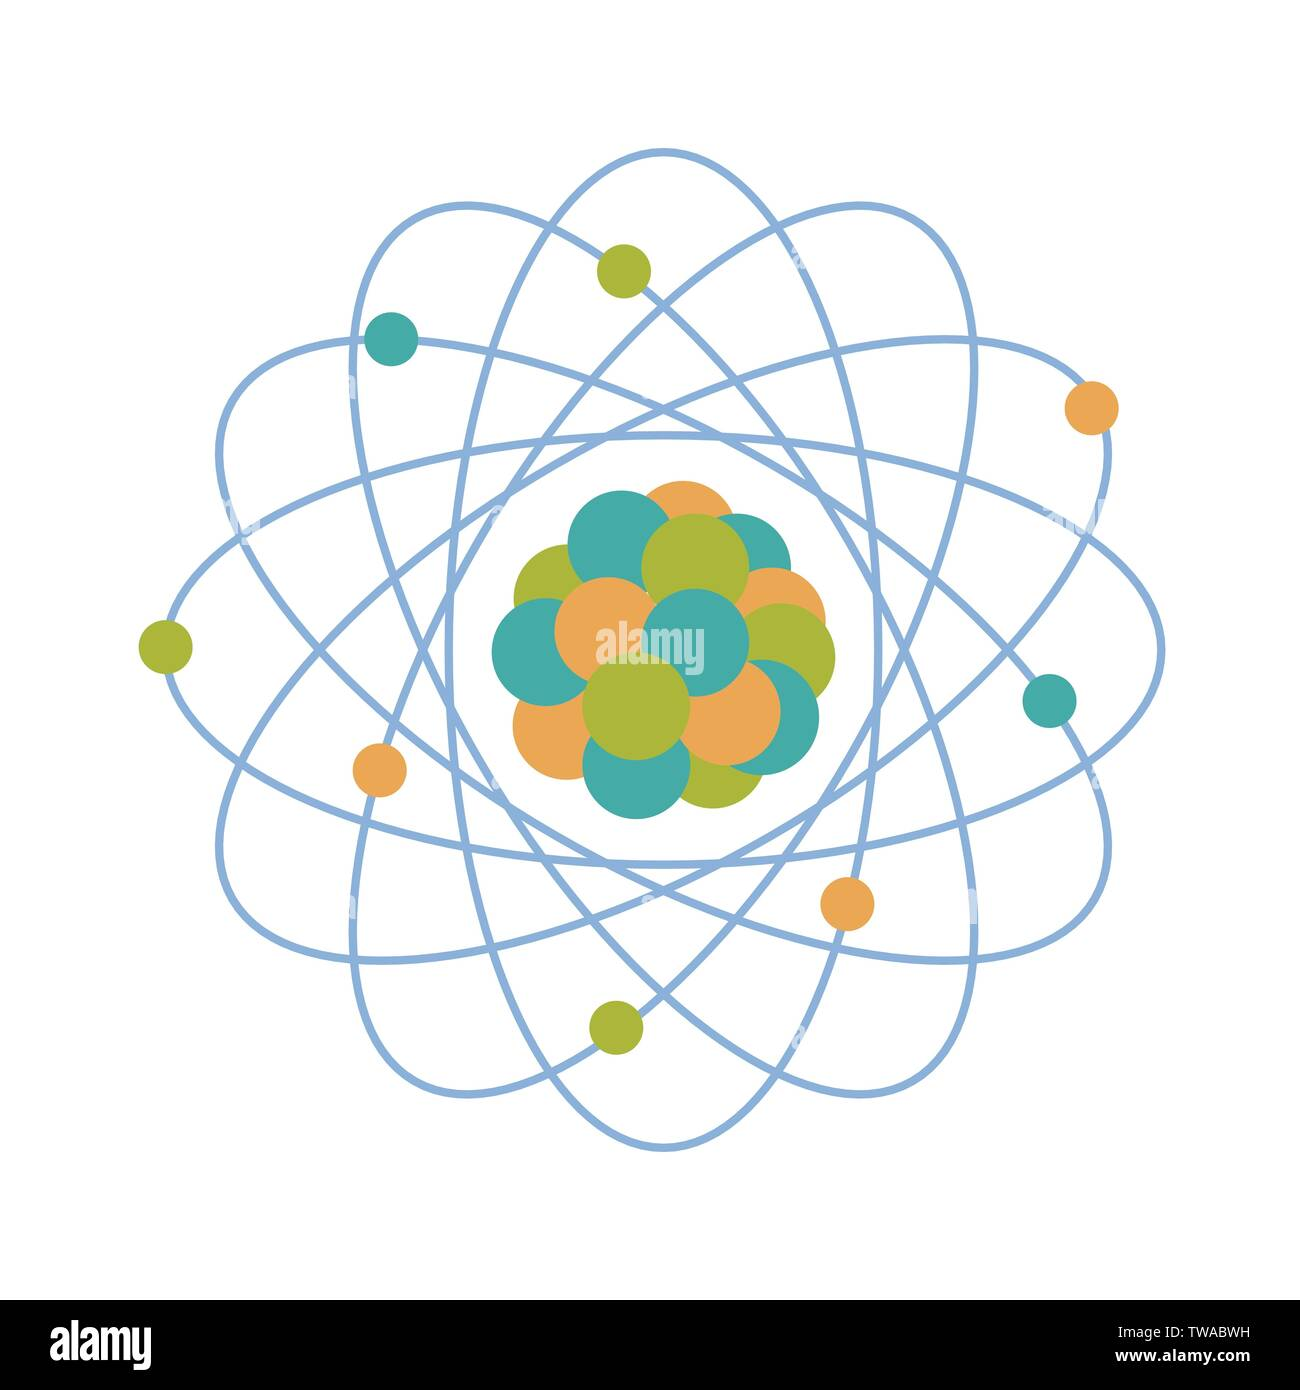 vector illustration with atomic structure print with symbol of nuclear energy scientific research molecular chemistry education science day chem stock vector image art alamy https www alamy com vector illustration with atomic structure print with symbol of nuclear energy scientific research molecular chemistry education science day chem image256540413 html